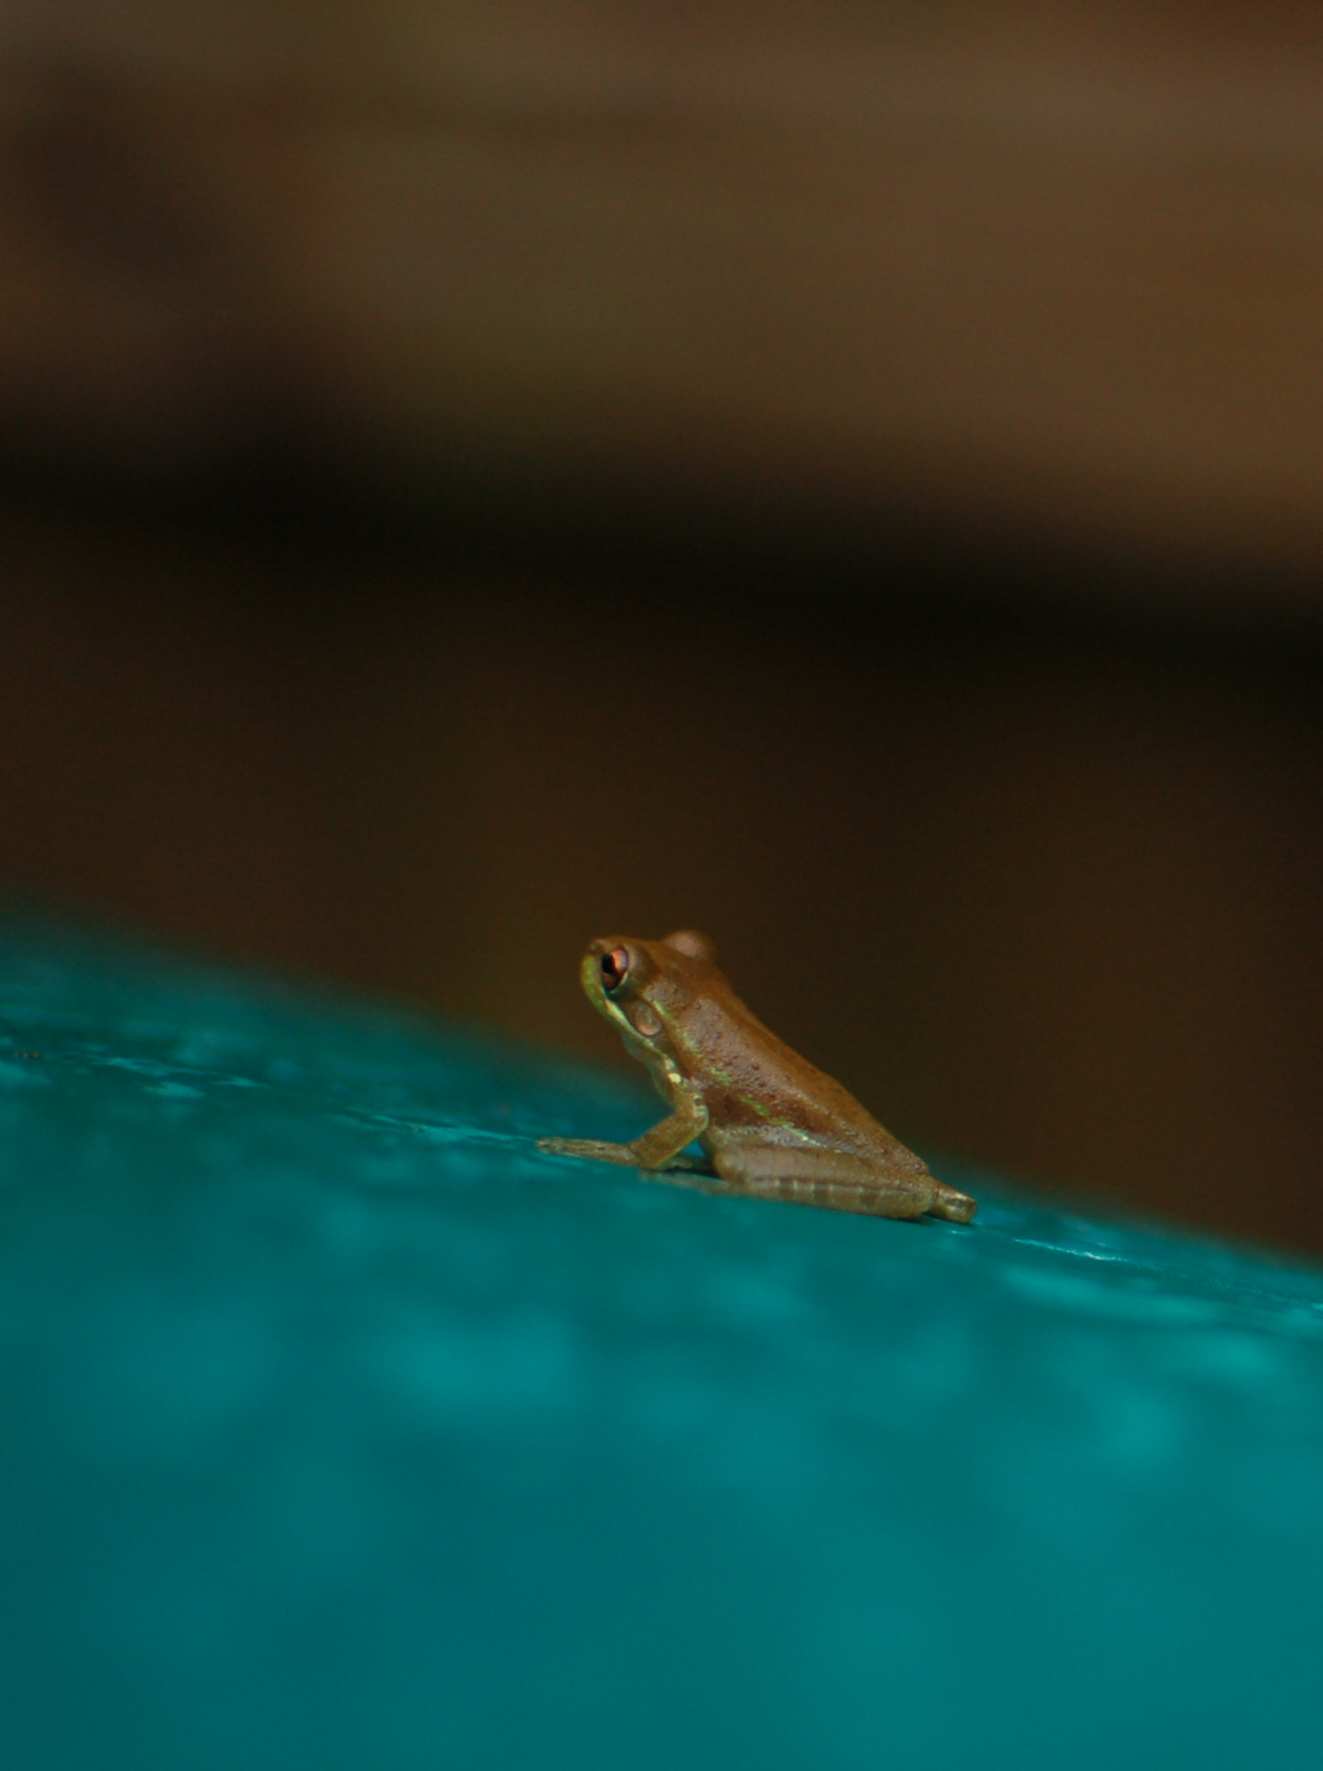 i 4 - compost - a lone frog - photos-5852.jpg